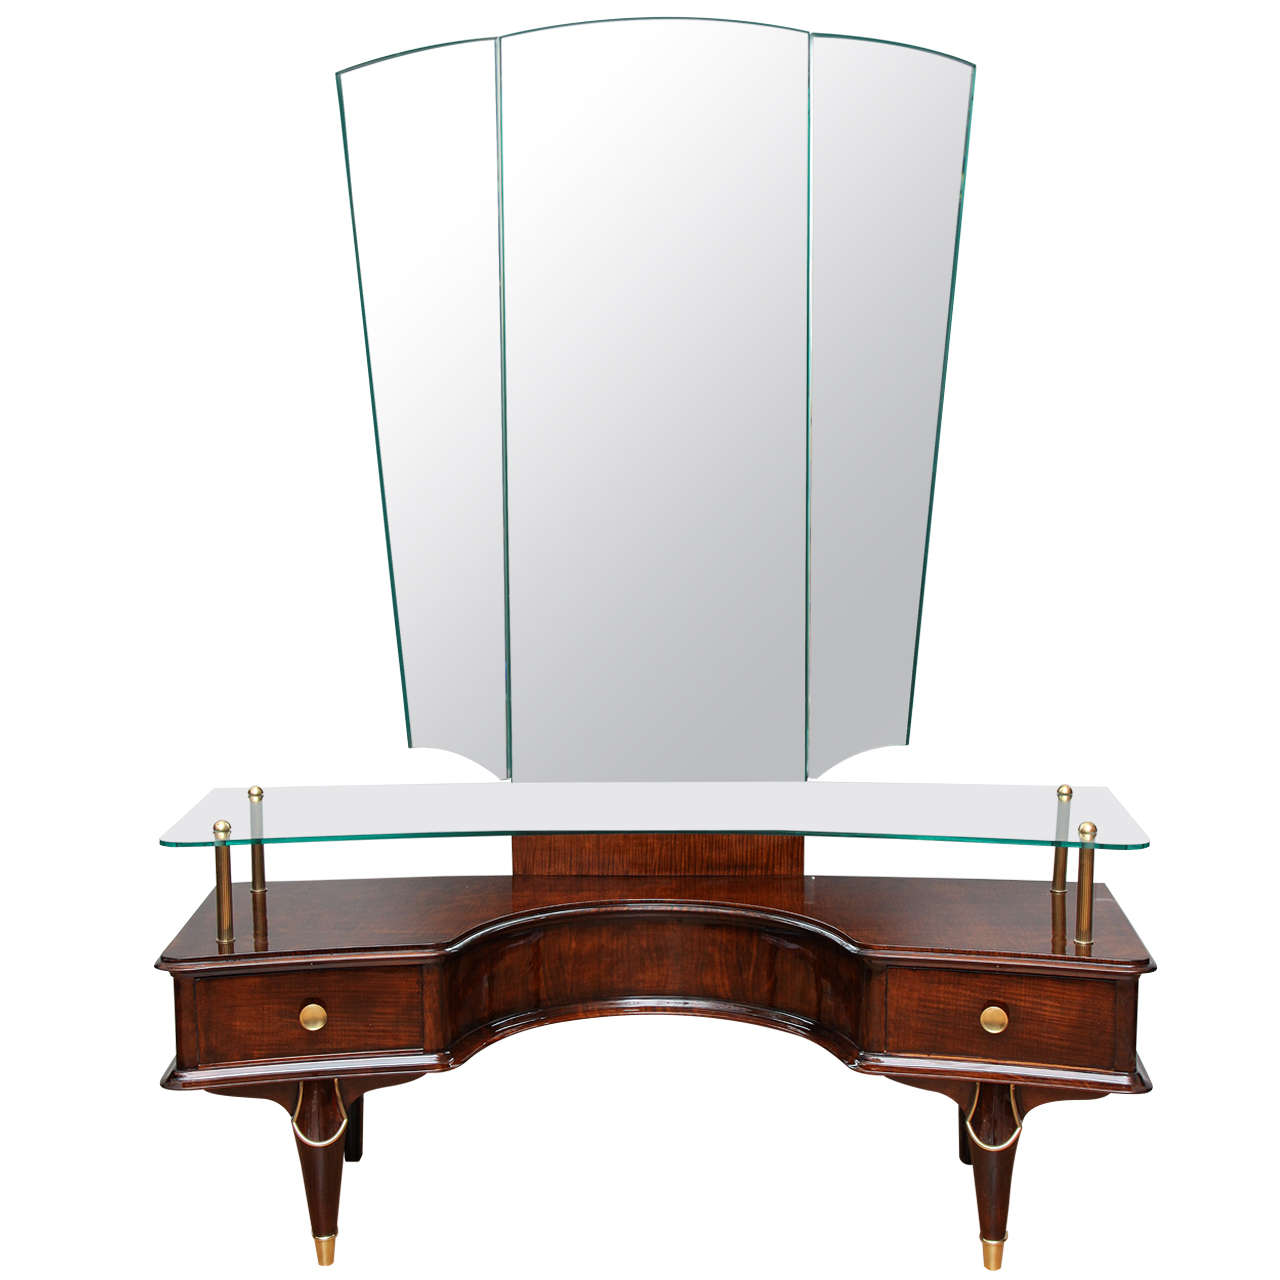 Fabulous art deco coiffeuse dressing table for sale at 1stdibs for Vanity dressing table